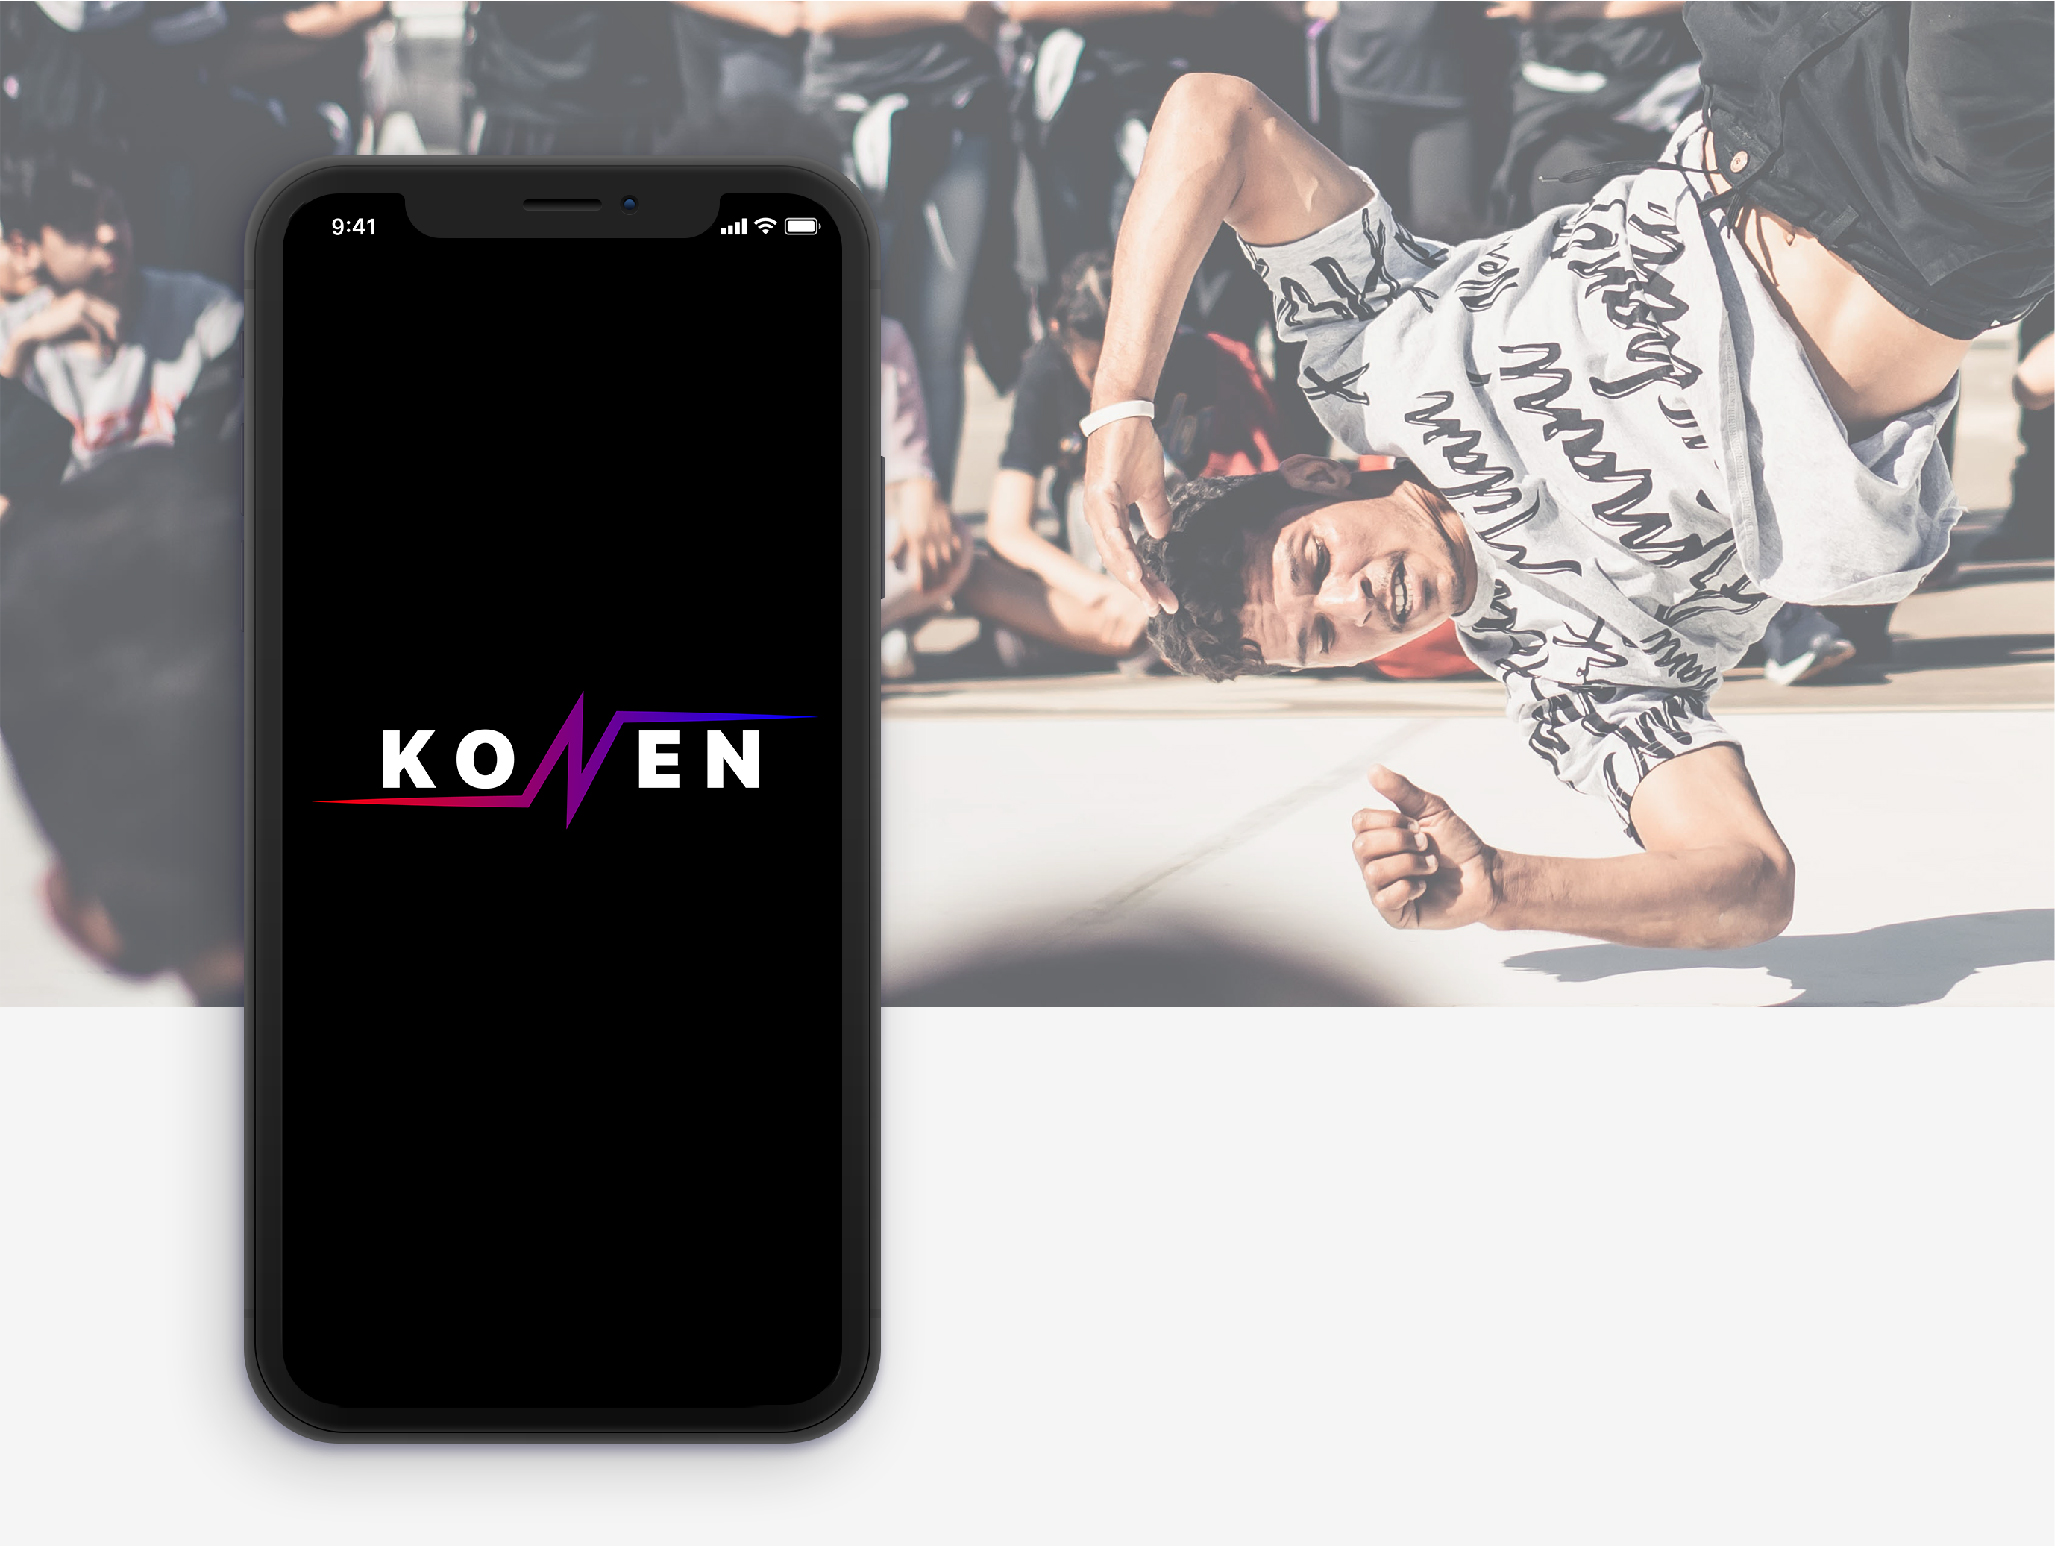 Kozen - improve transparency in Urban Dance events    Read more